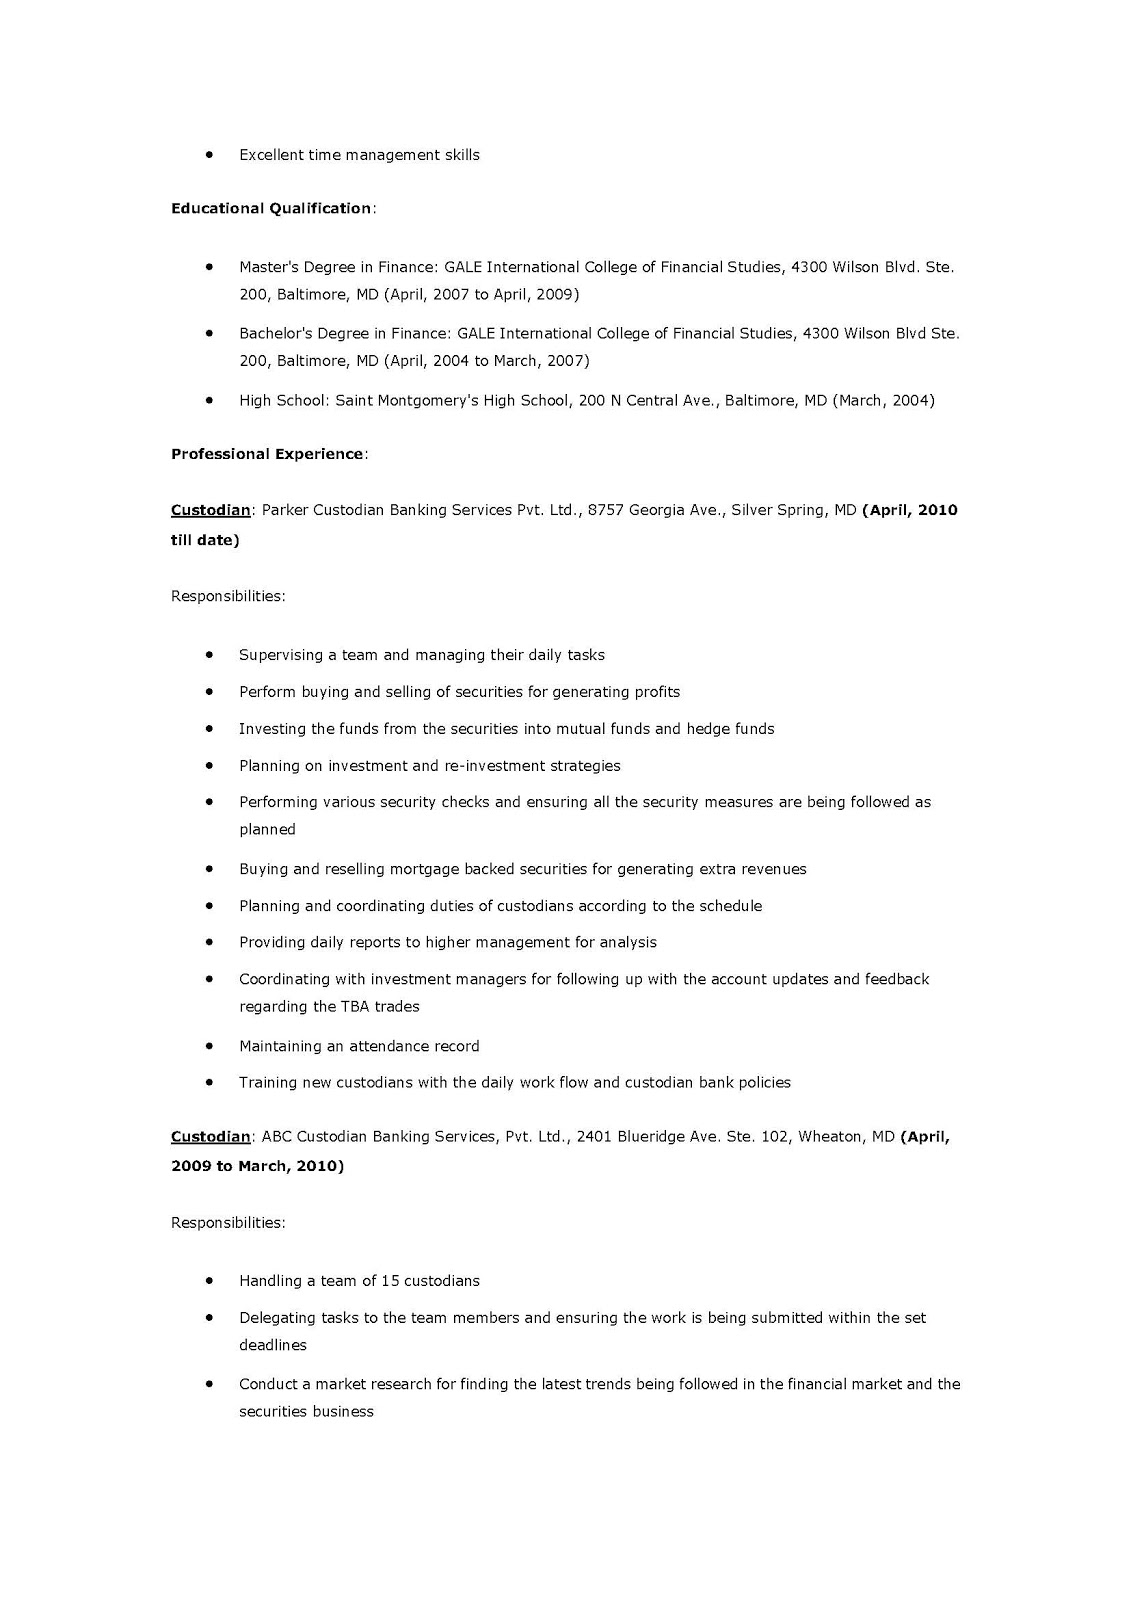 Resume Samples: Custodian Resume